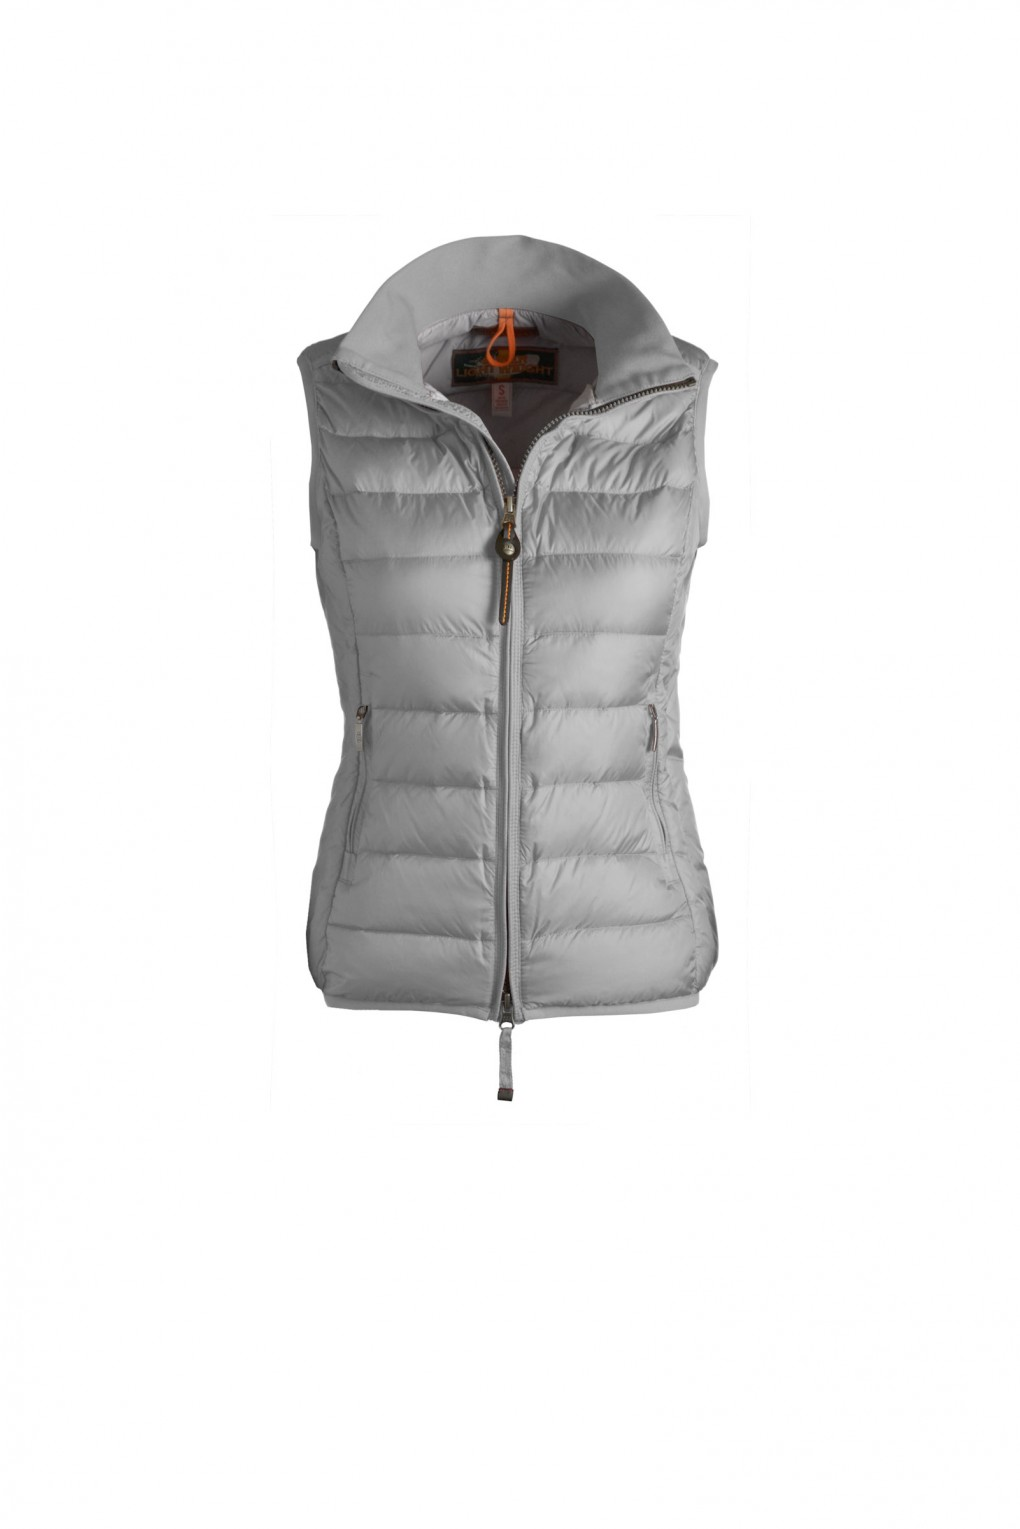 parajumpers DODIE6 woman outerwear Grey